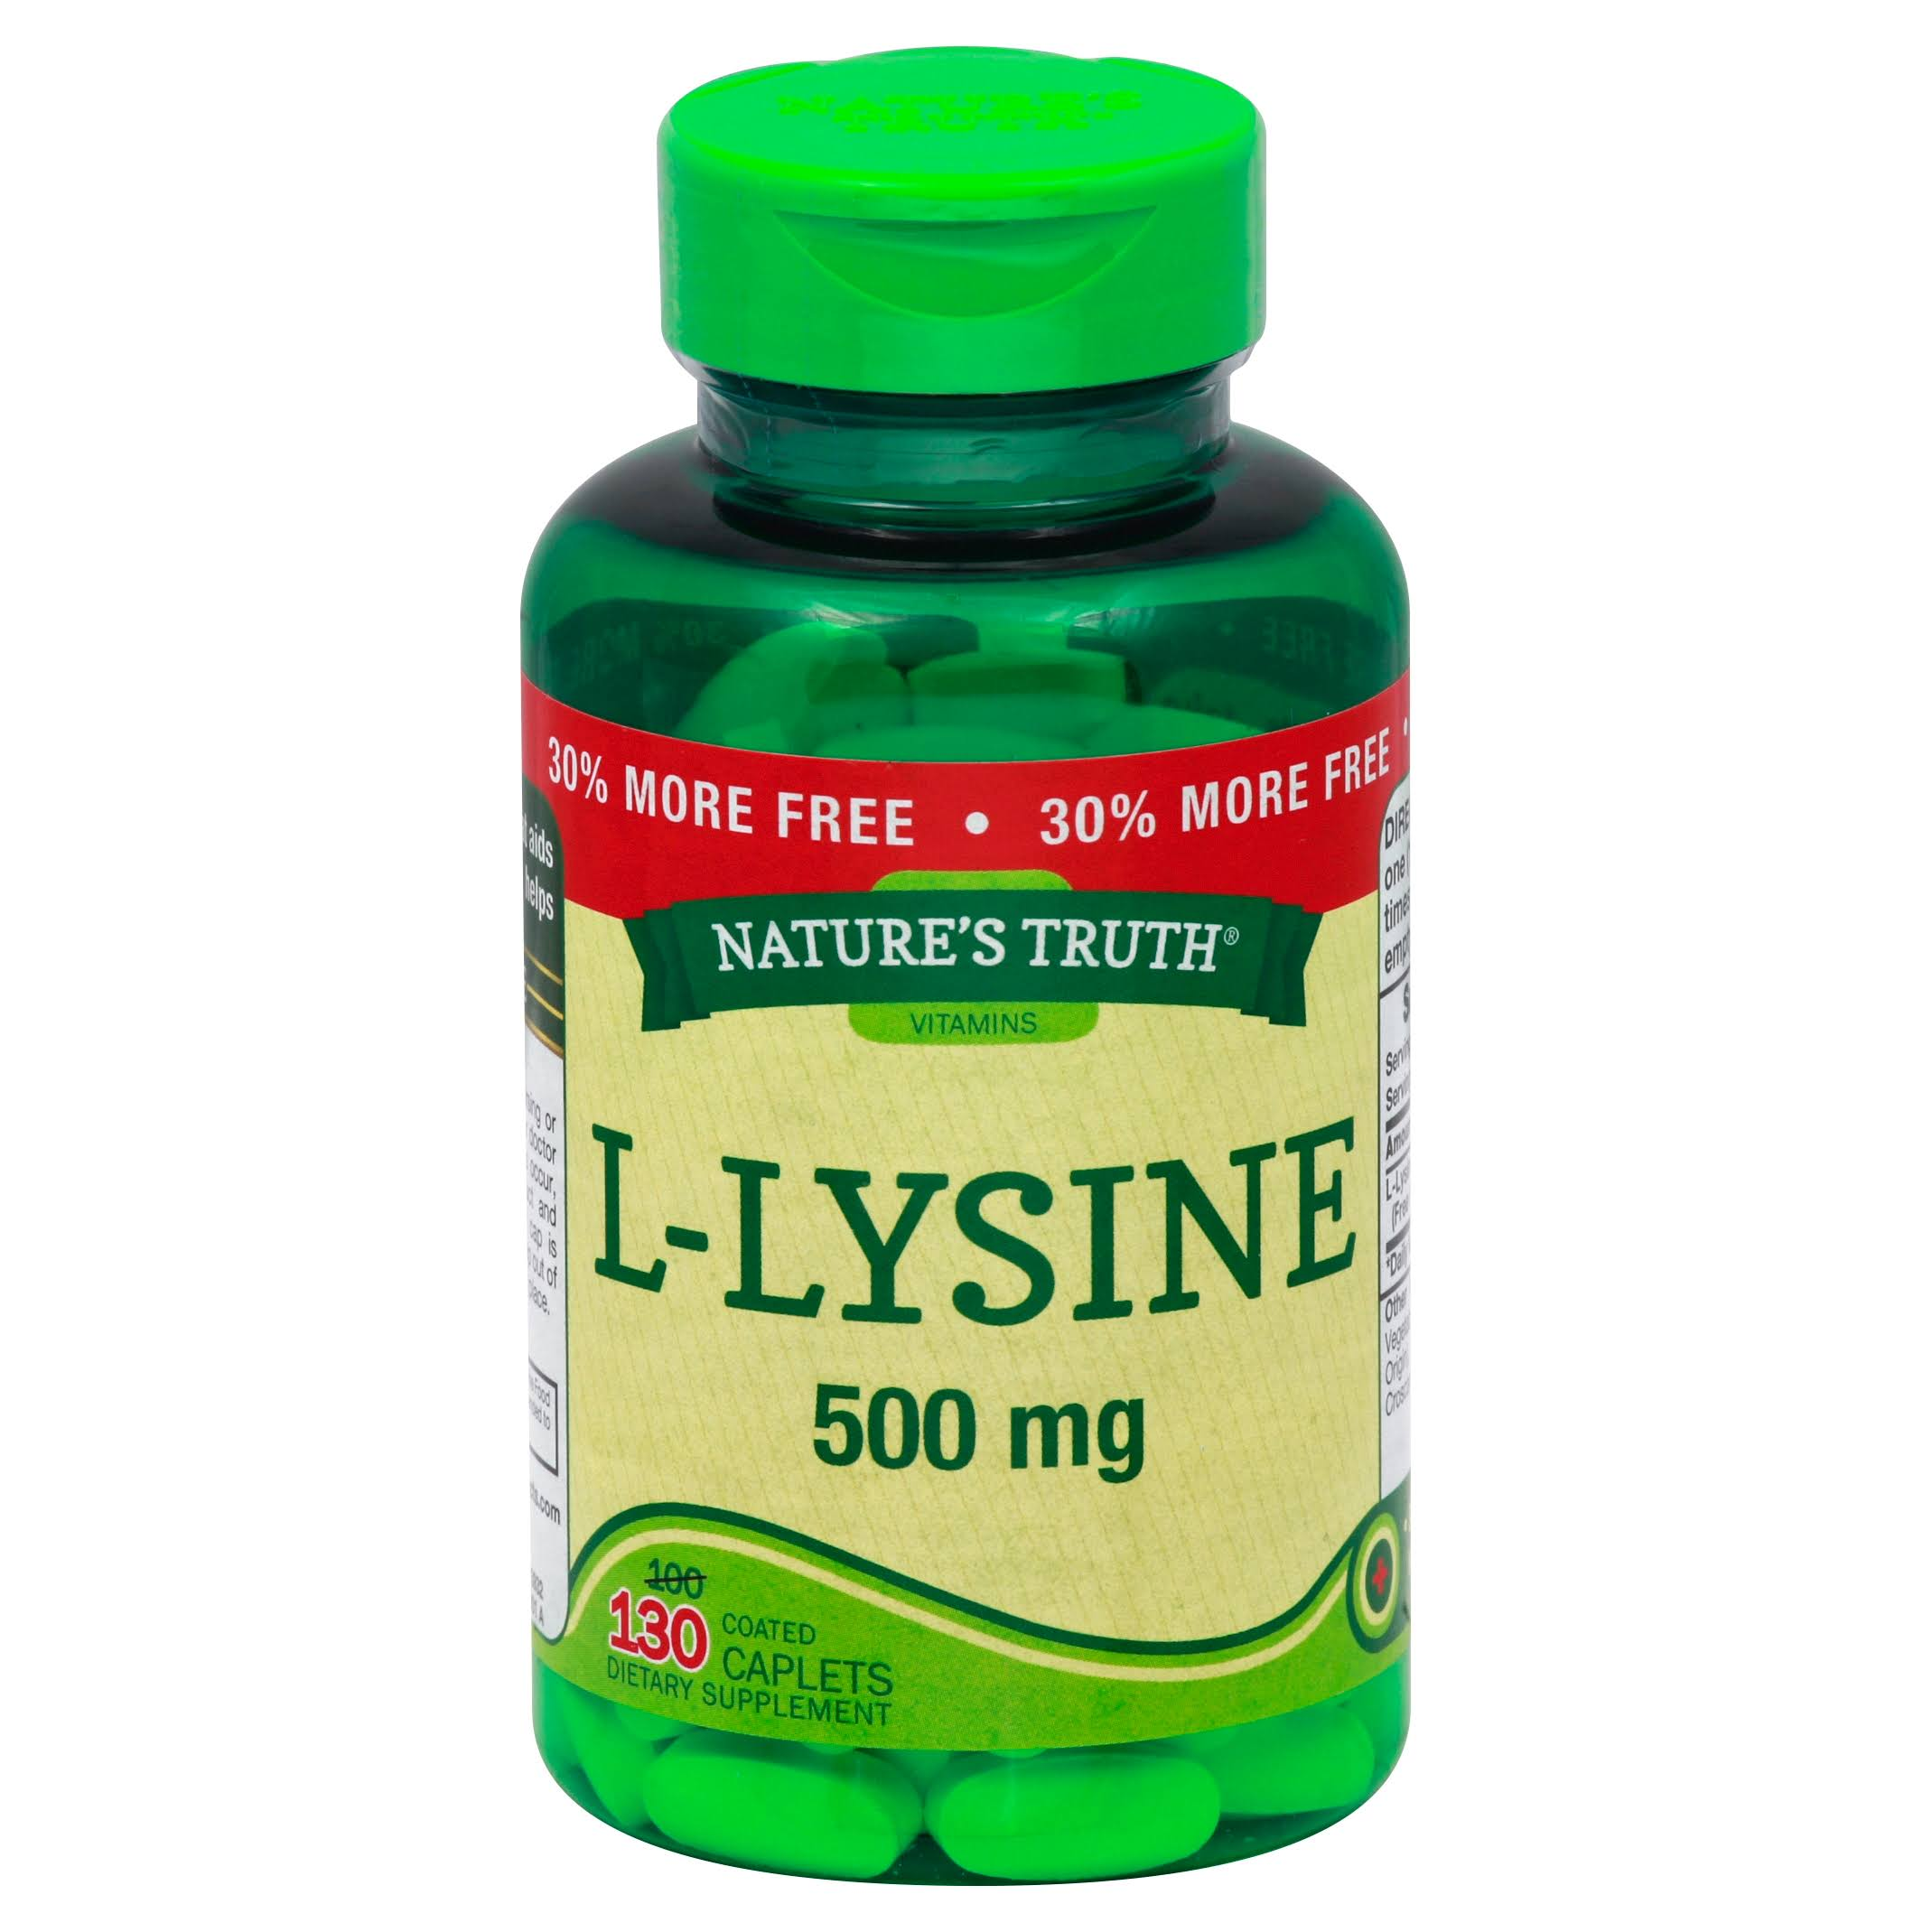 Natures Truth L-Lysine, 500 mg, Coated Caplets - 130 caplets